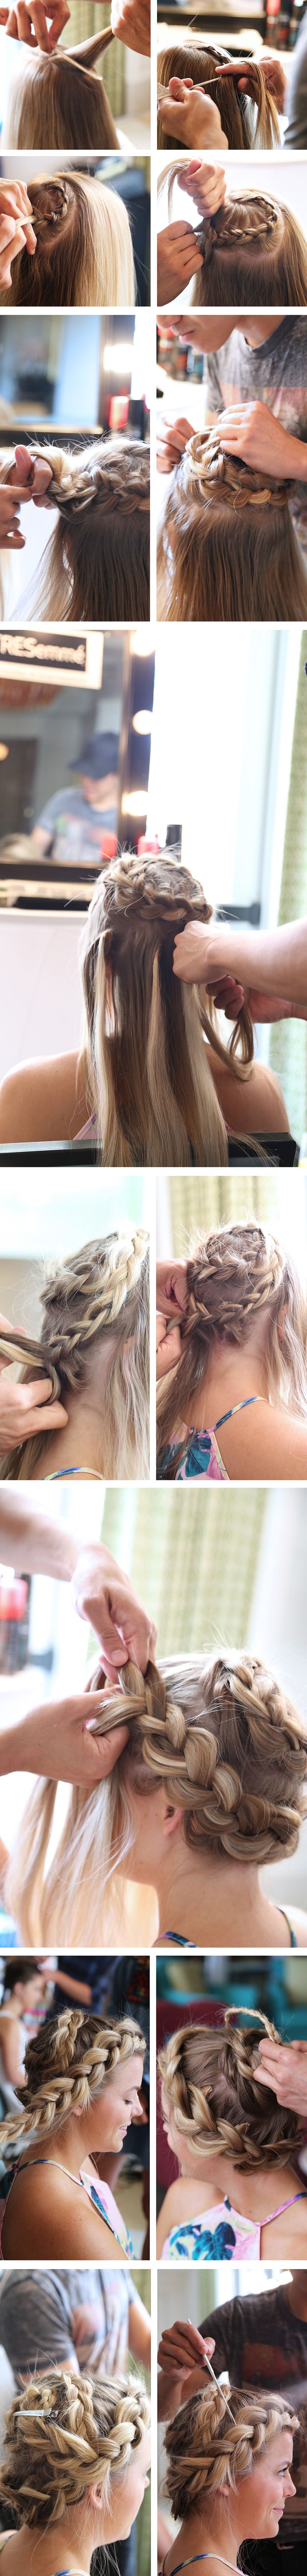 My Summer Hair Series with TRESemmé is coming to an end today with this third + final hairstyle. But dare I say, we saved the best for last?! This Chunky Spiral-esk Braid was pure perfection during Mi